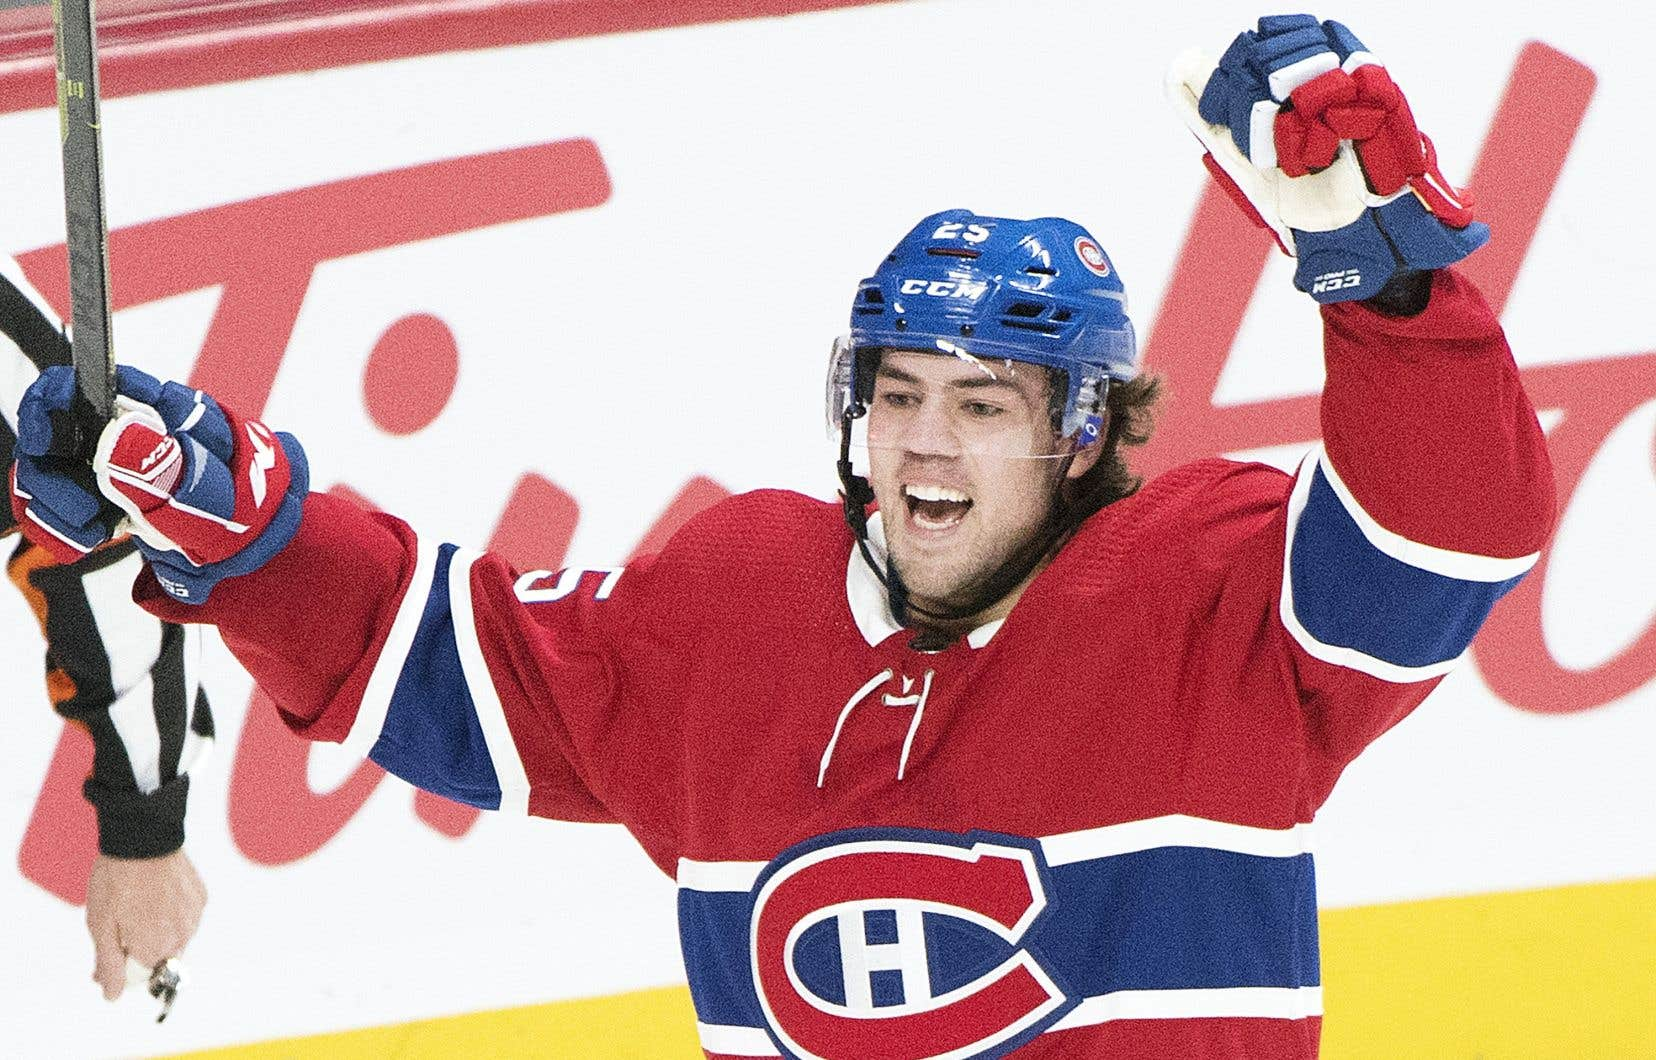 Le centre recrue du Canadien Ryan Poehling